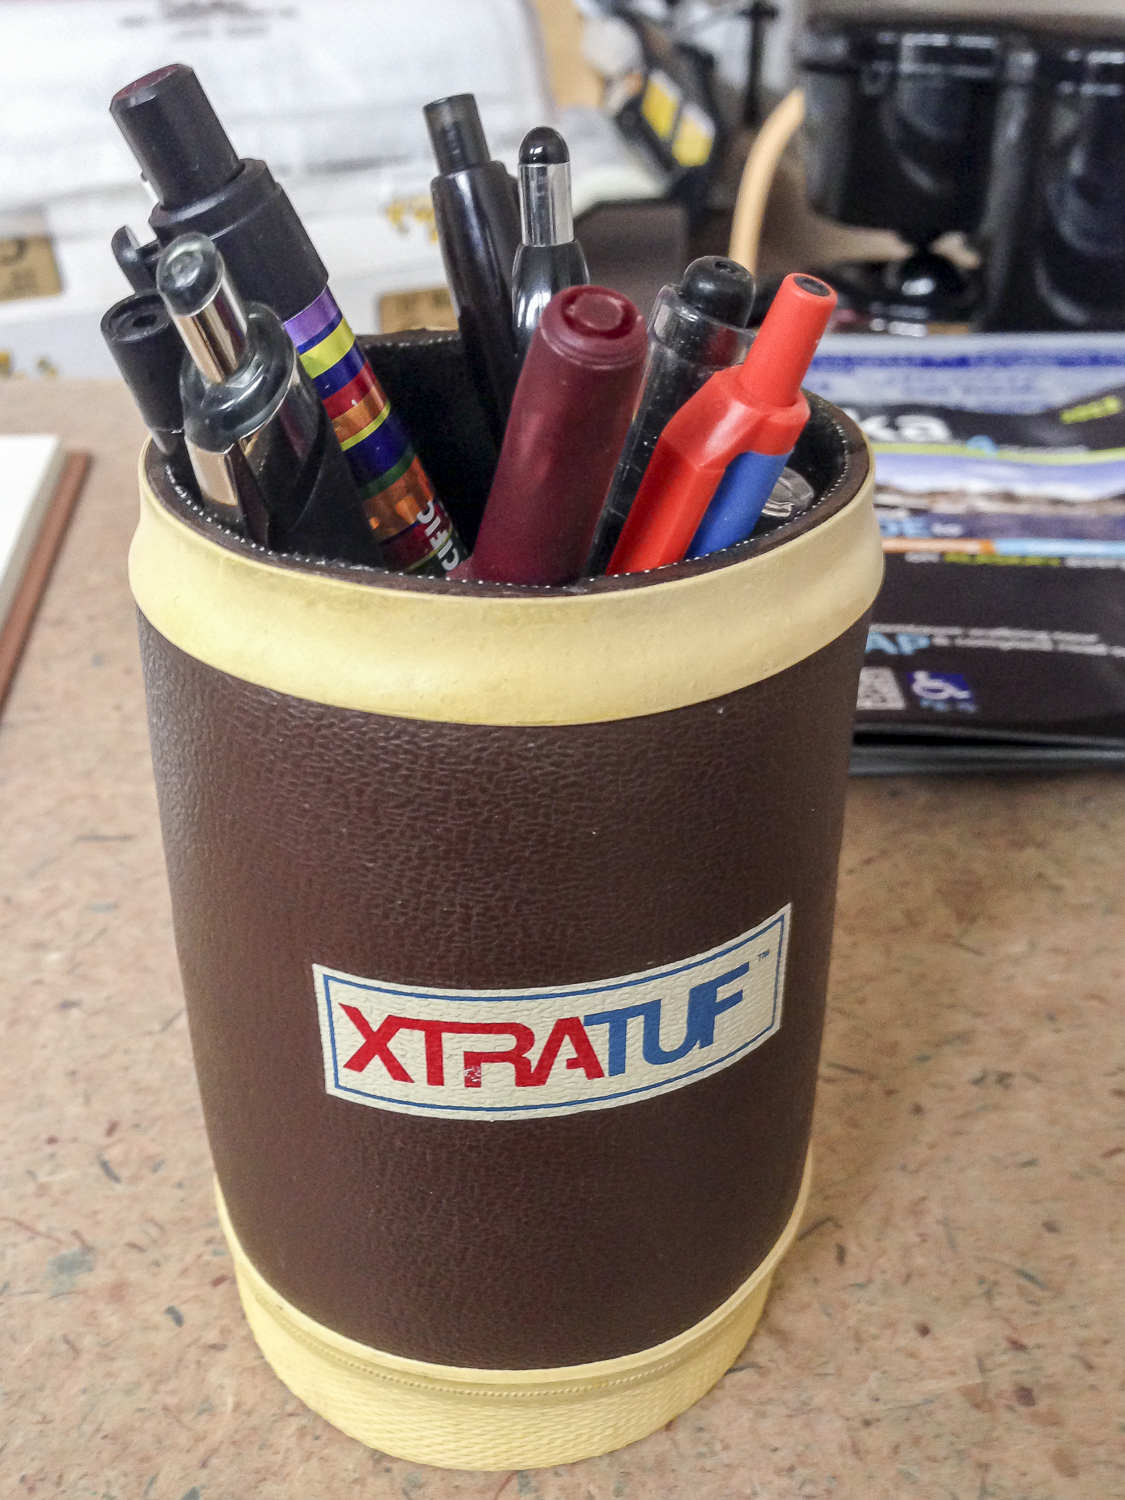 You know you're in Alaska when the pen holder is from Xtratuf.